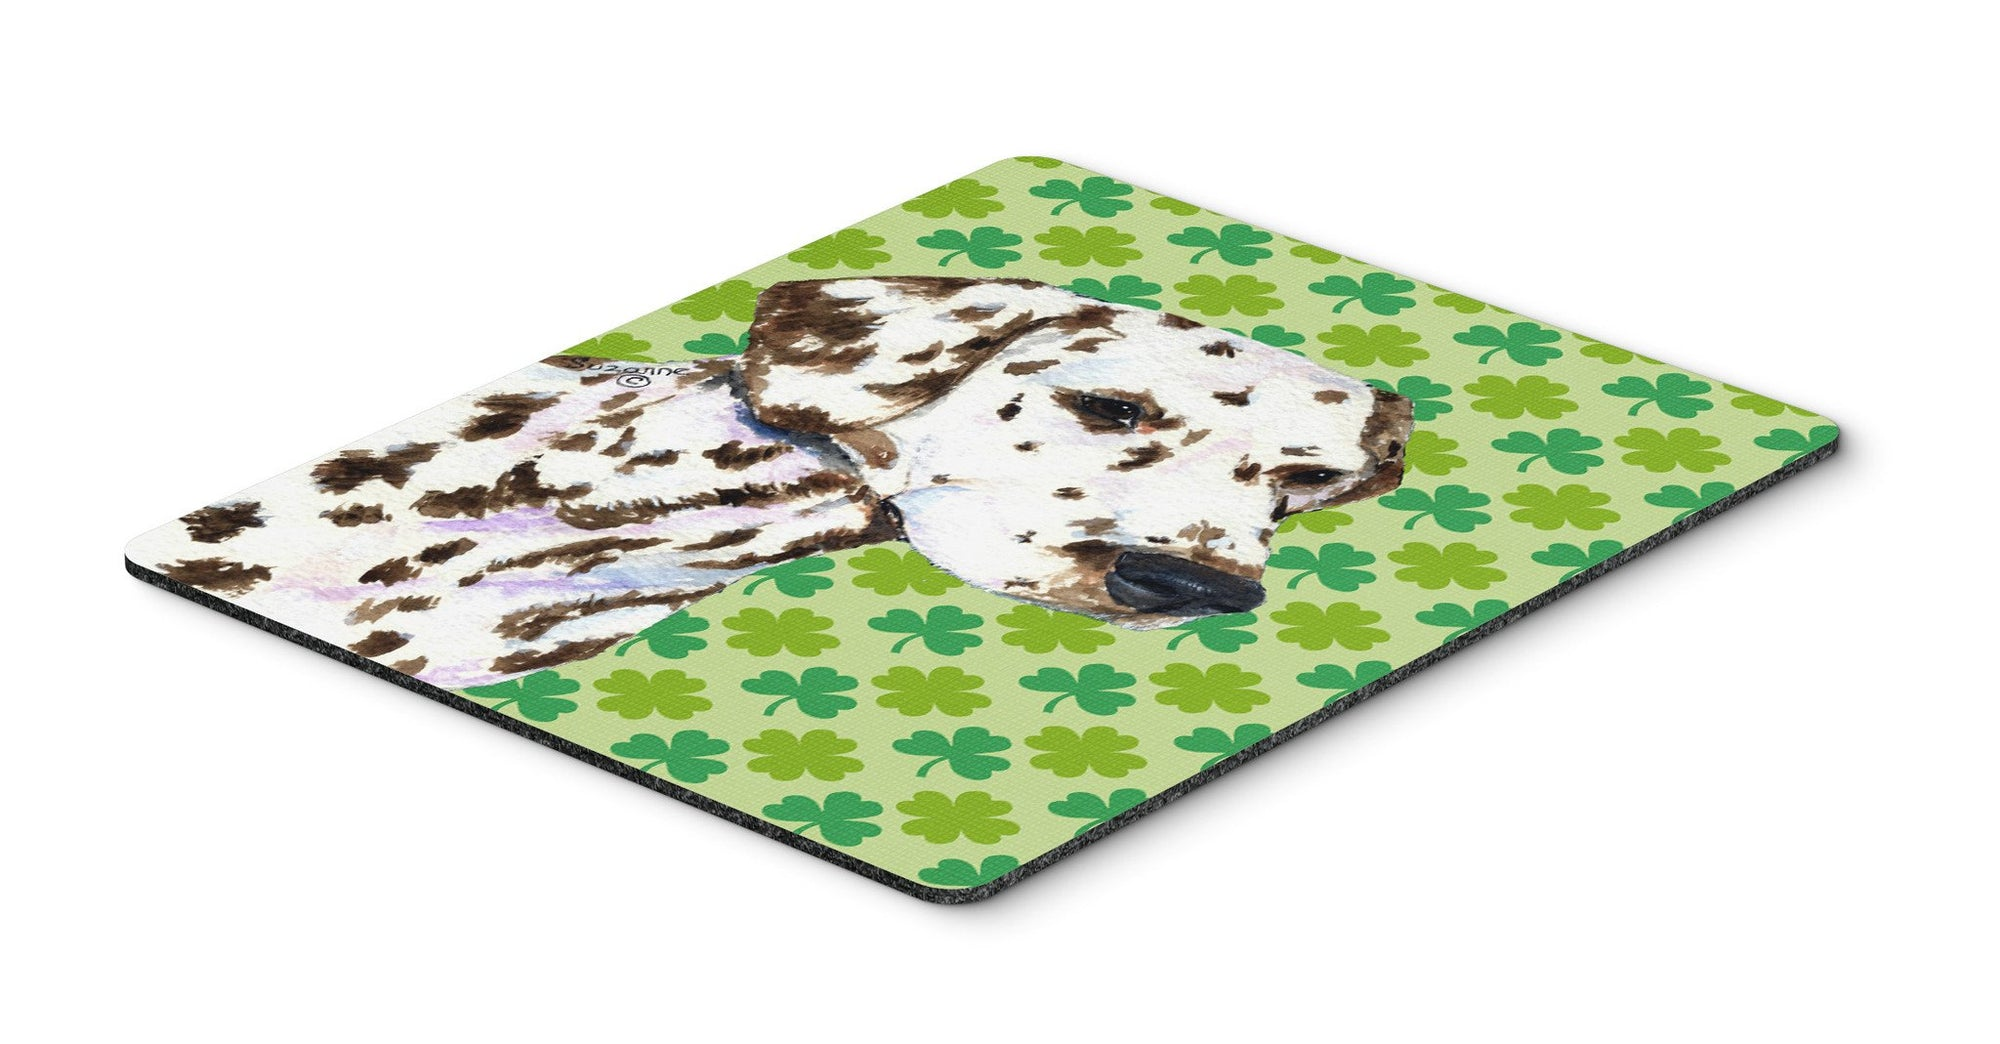 Dalmatian St. Patrick's Day Shamrock Portrait Mouse Pad, Hot Pad or Trivet by Caroline's Treasures